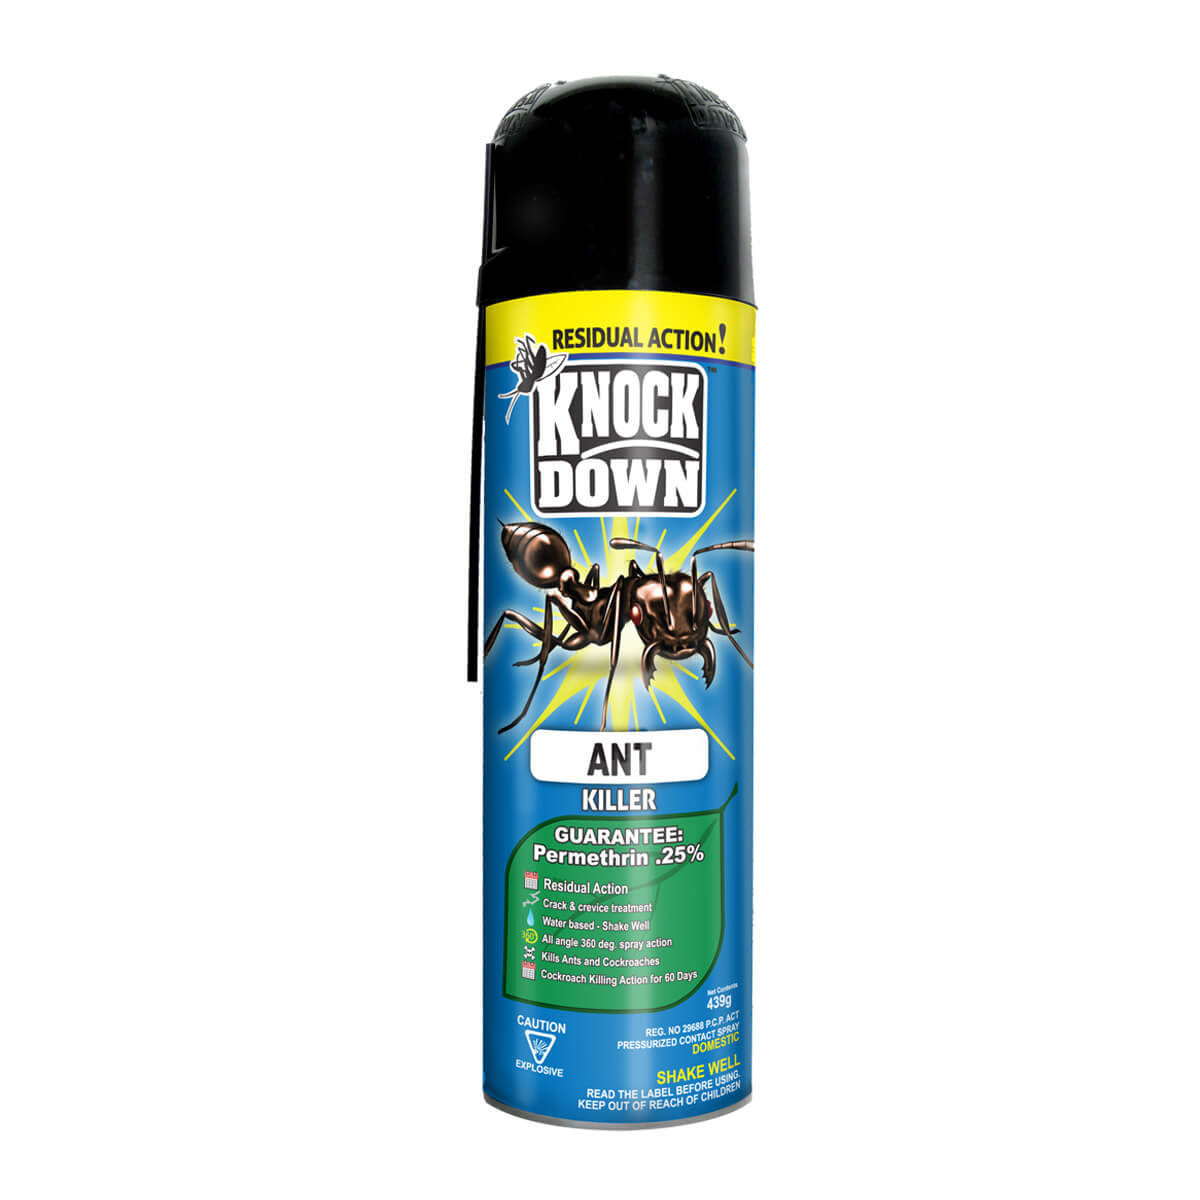 Knock Down Ant Killer - 60 day residual 439 g